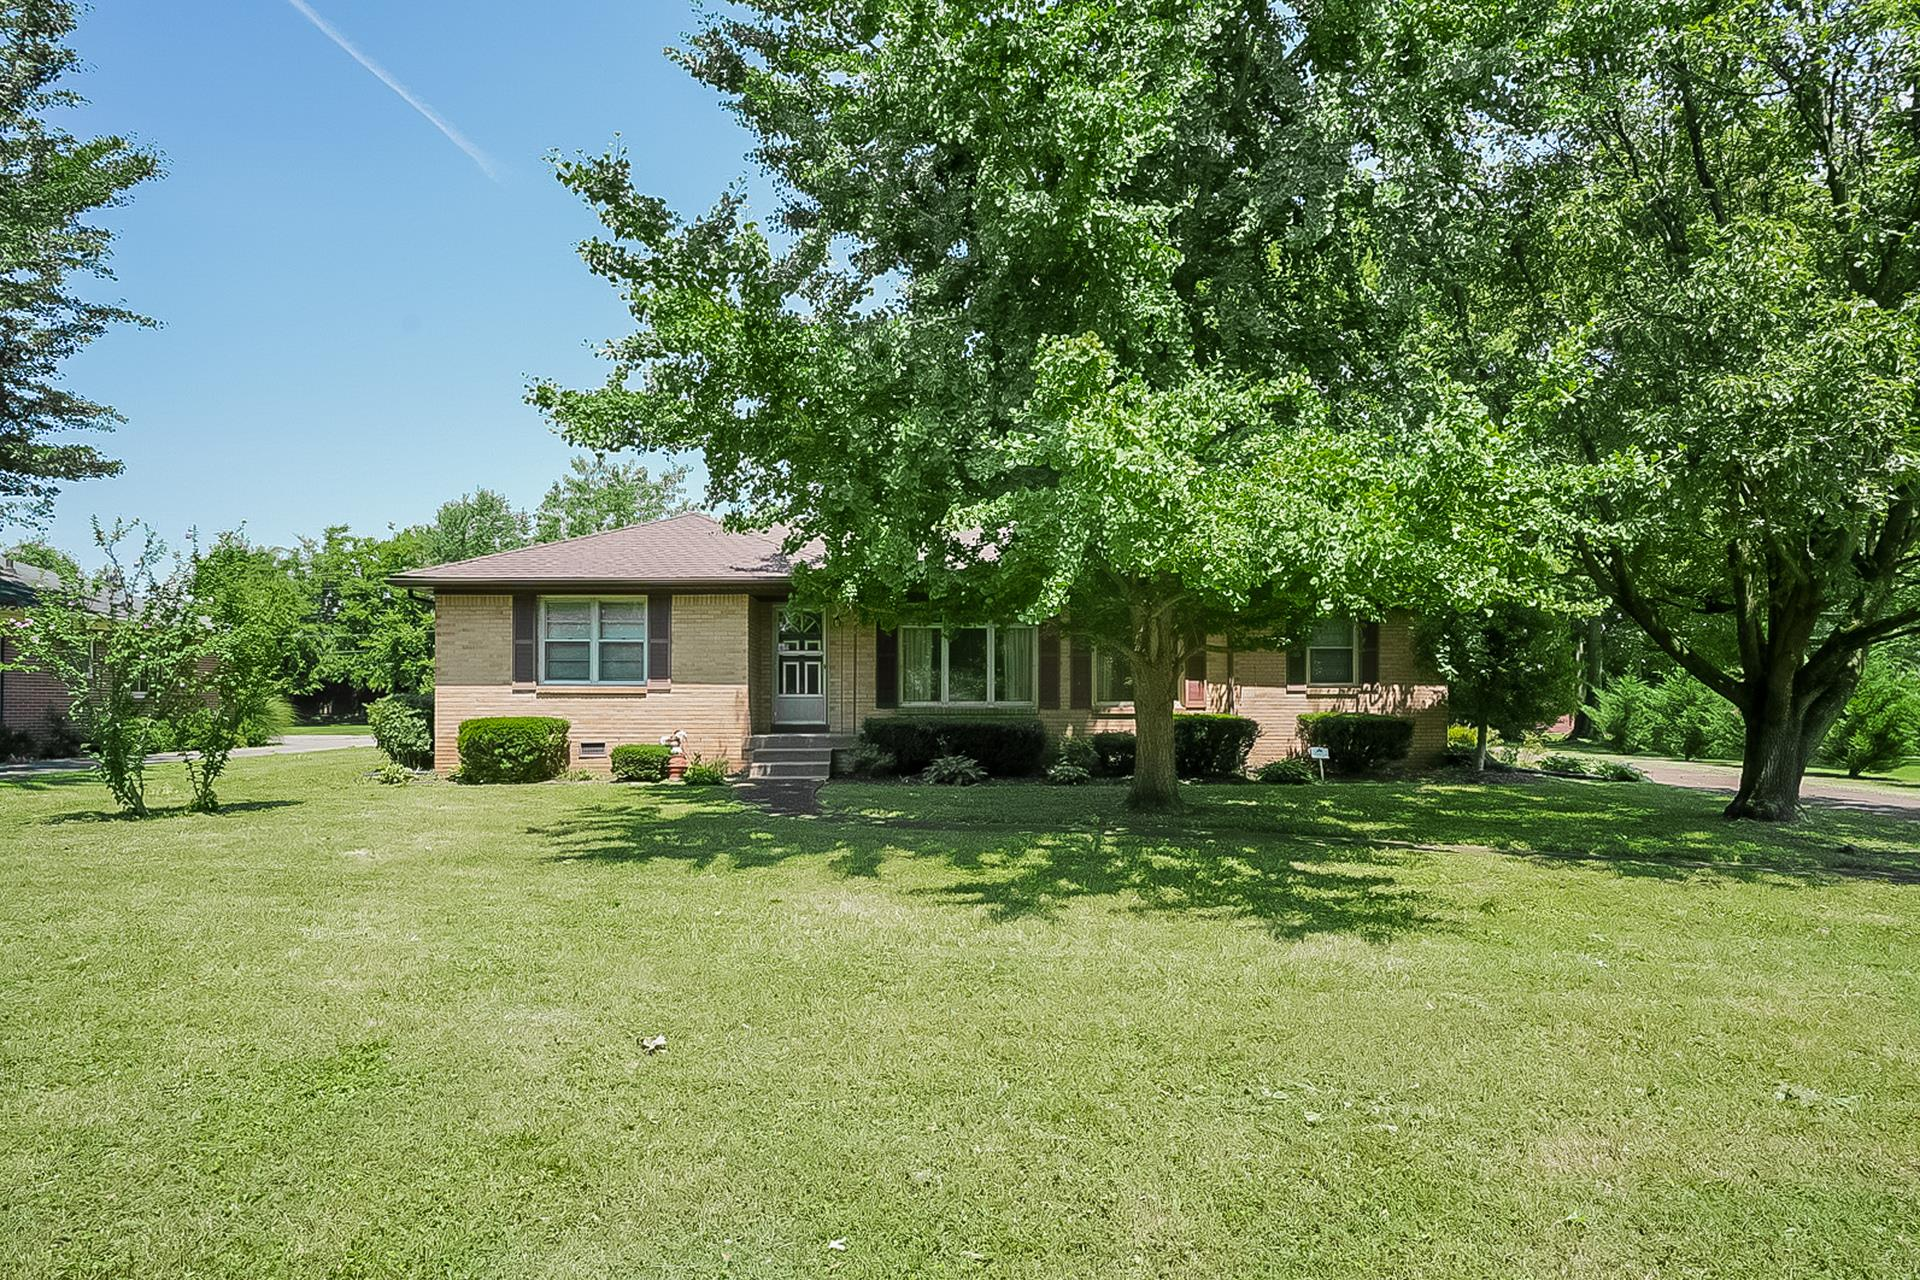 1012 Jefferson Ave 37066 - One of Gallatin Homes for Sale